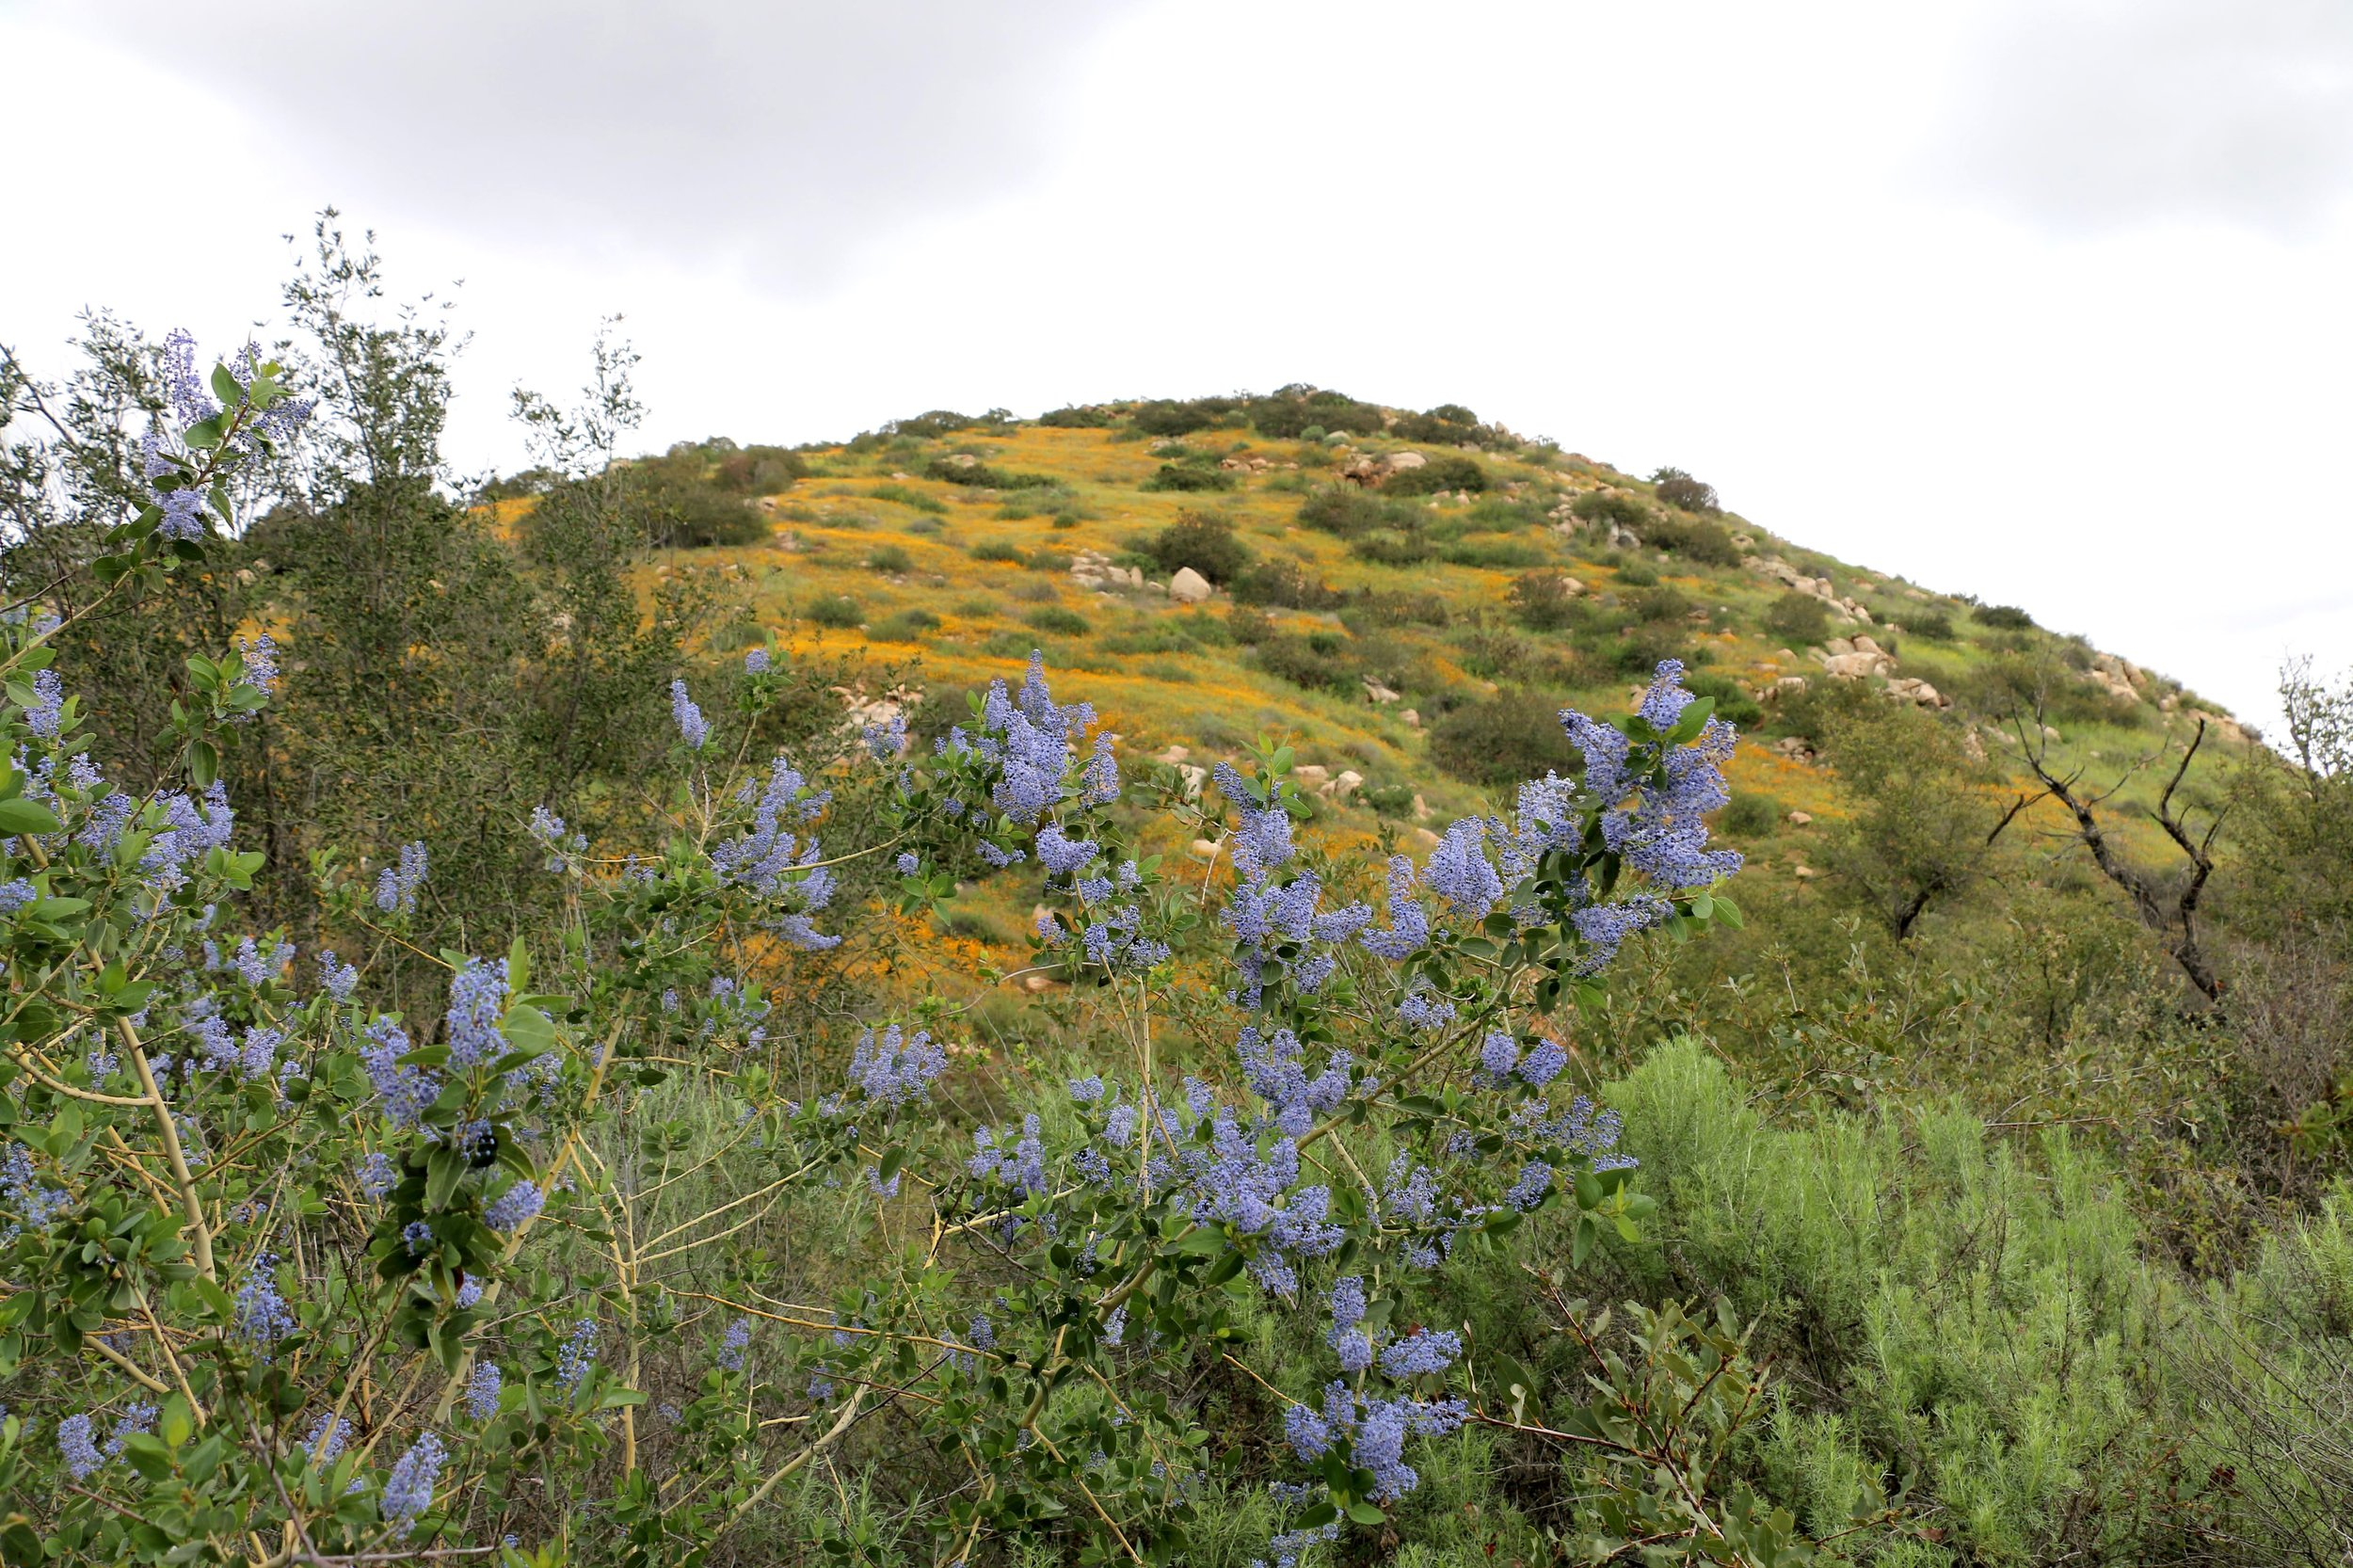 White Bark Ceanothus (Ceanothus leucodermis) against a hill of California Poppy PC: Steve Miller